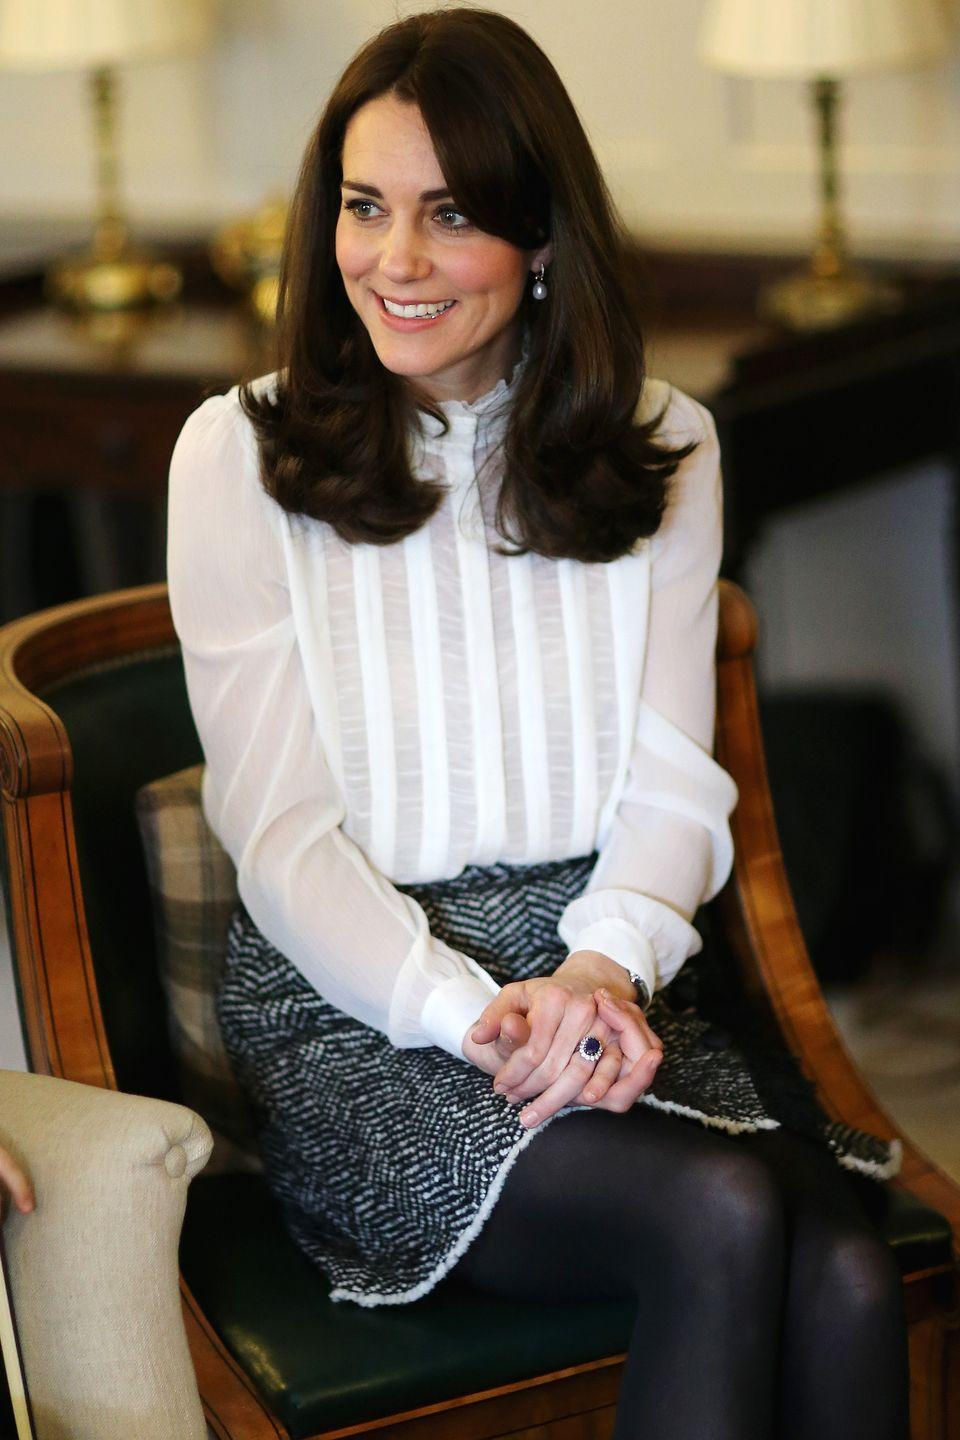 <p>The Duchess knows the power of a black + white ensemble, pairing her high collar blouse with a tweed skirt for a polished look as Guest Editor of The Huffington Post. </p>